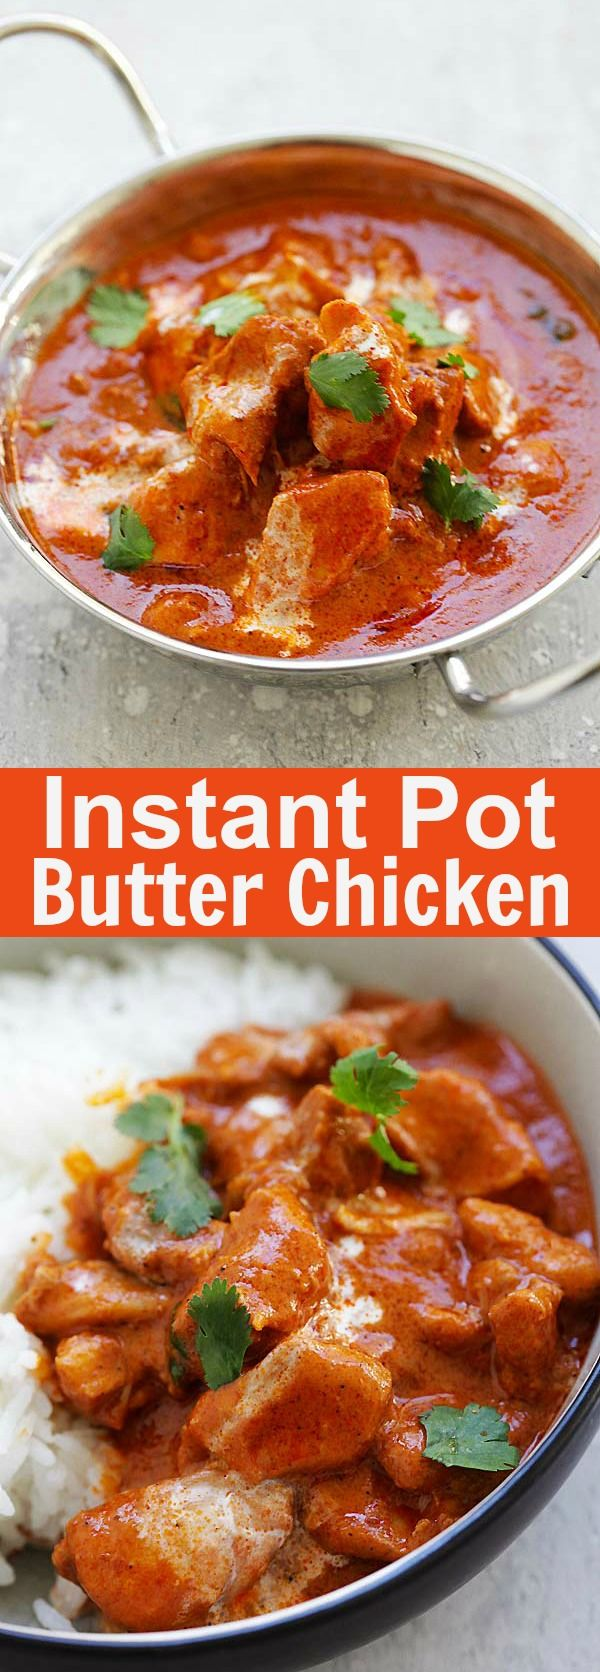 Instant Pot Butter Chicken - the best Indian butter chicken recipe with rich, creamy and delicious tomato butter chicken sauce | rasamalaysia.com